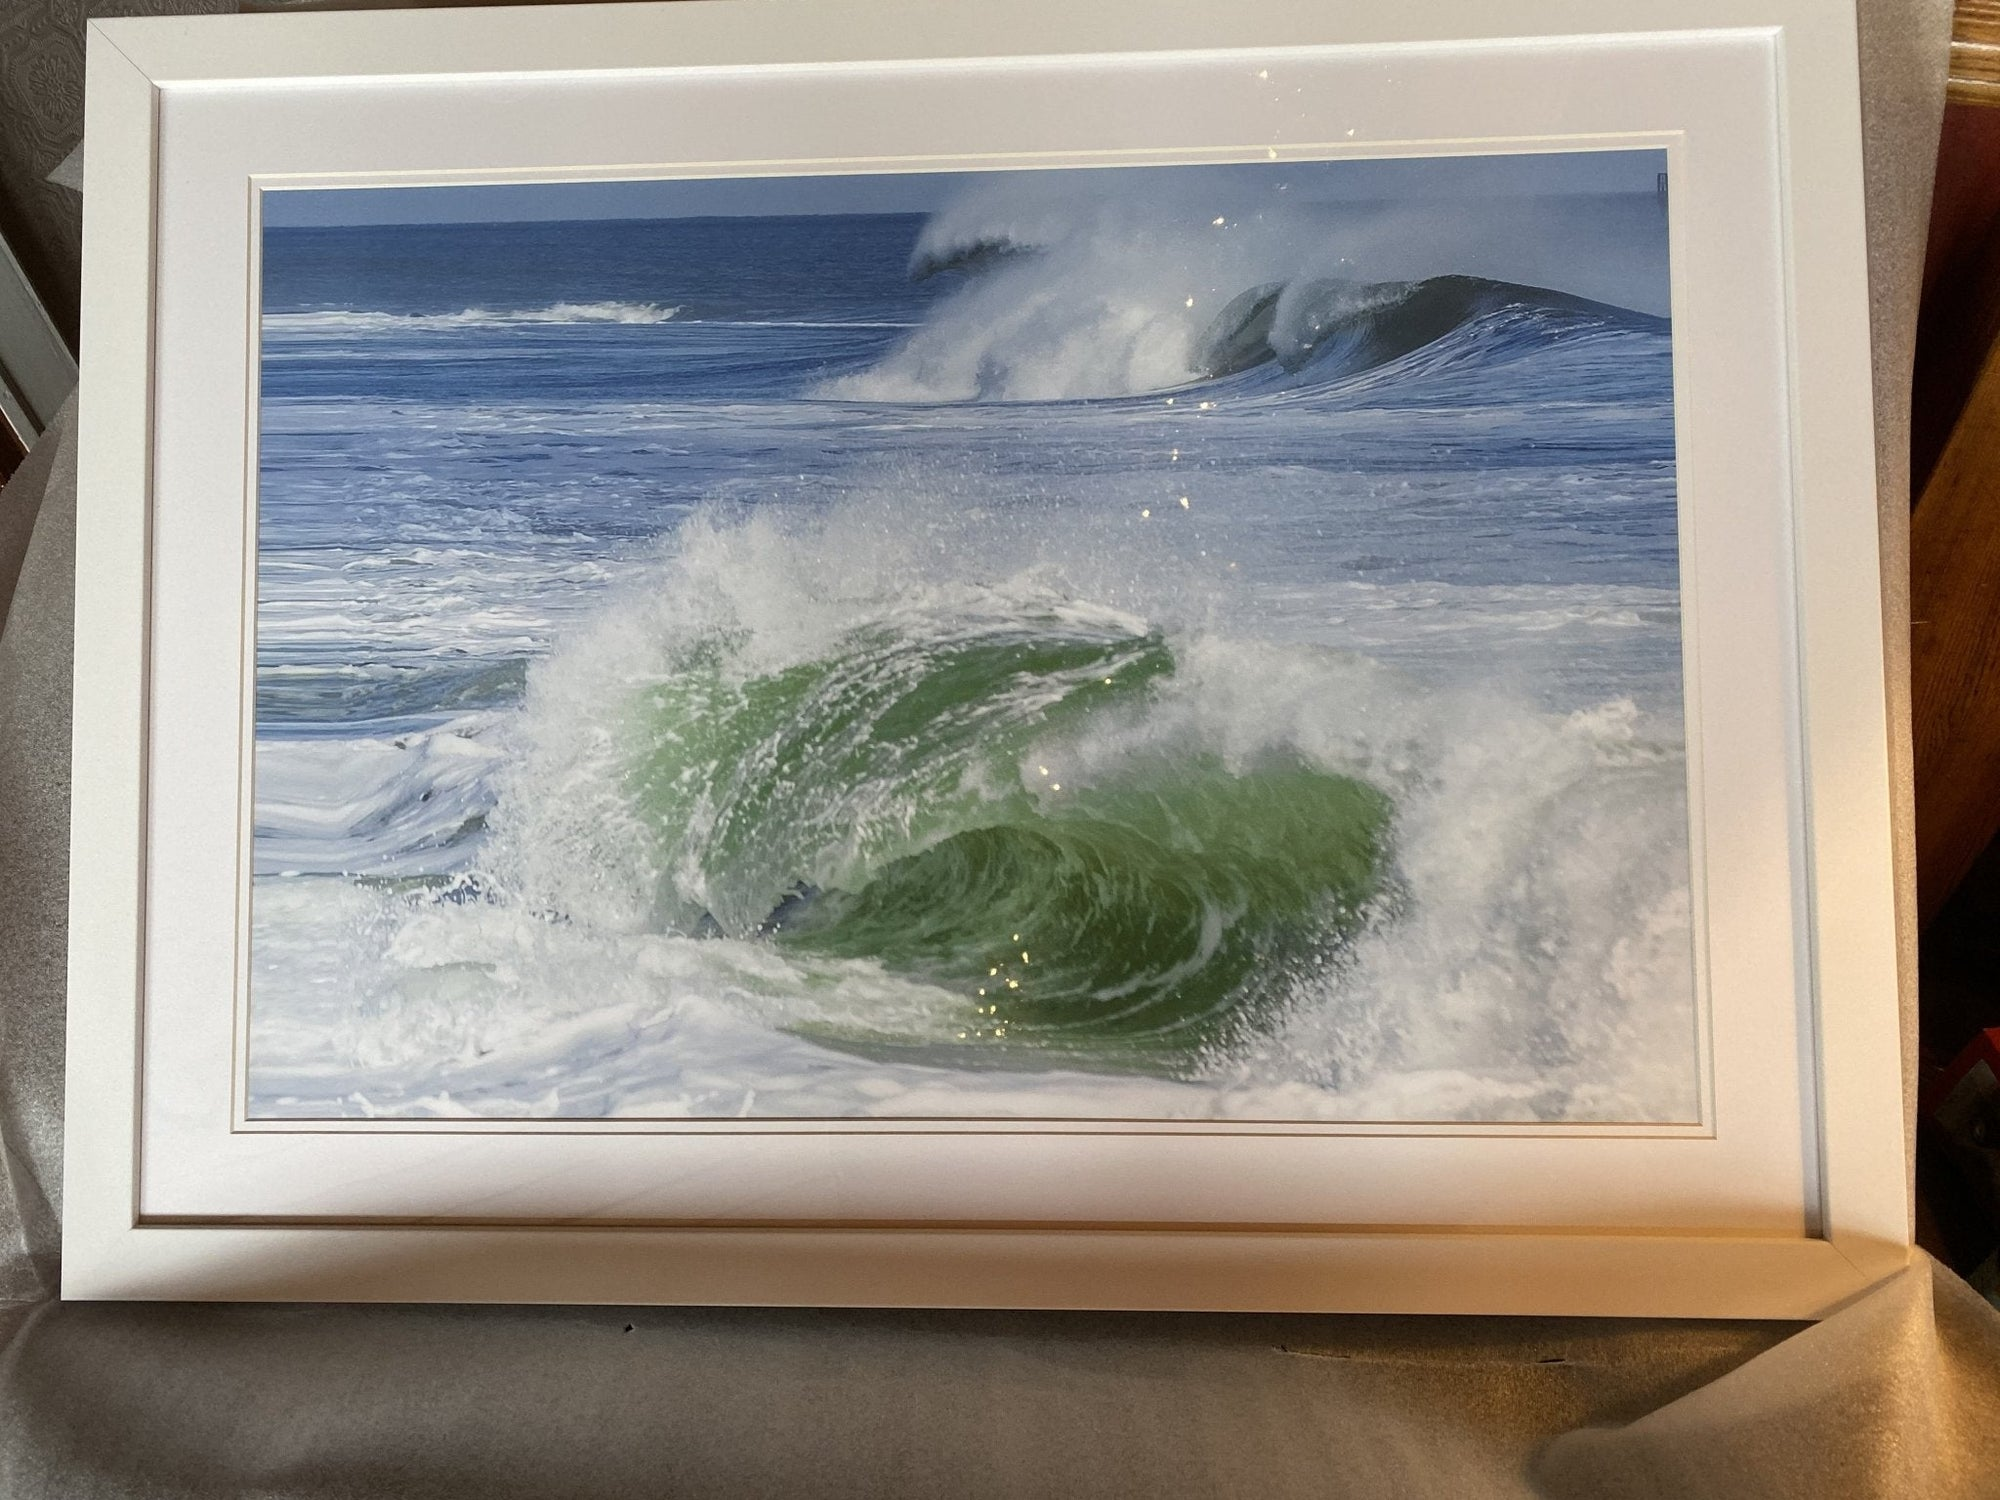 Belmar Emerald Wave Framed 20 x 30 print White frame Framed Fine Art - Bill McKim Photography -Jersey Shore whale watch tours